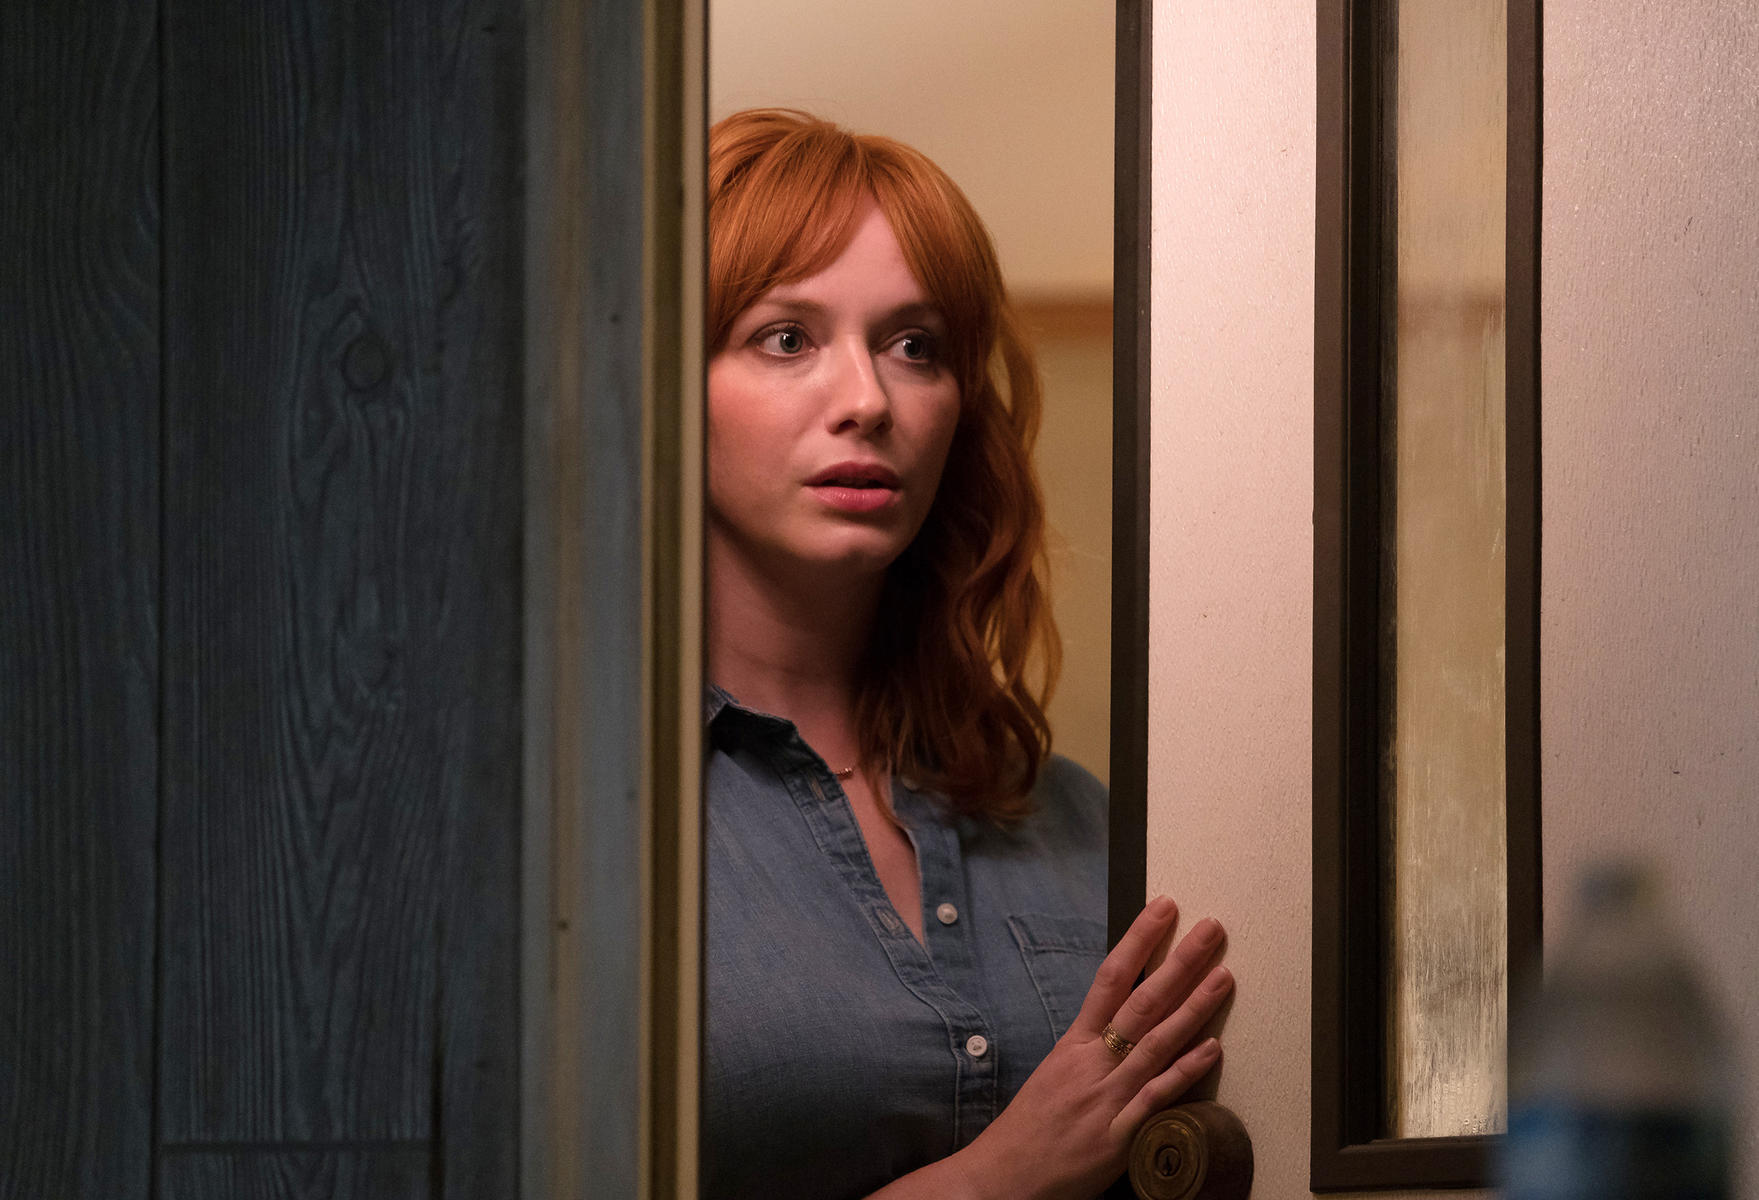 the-strangers-opfernacht-mit-christina-hendricks